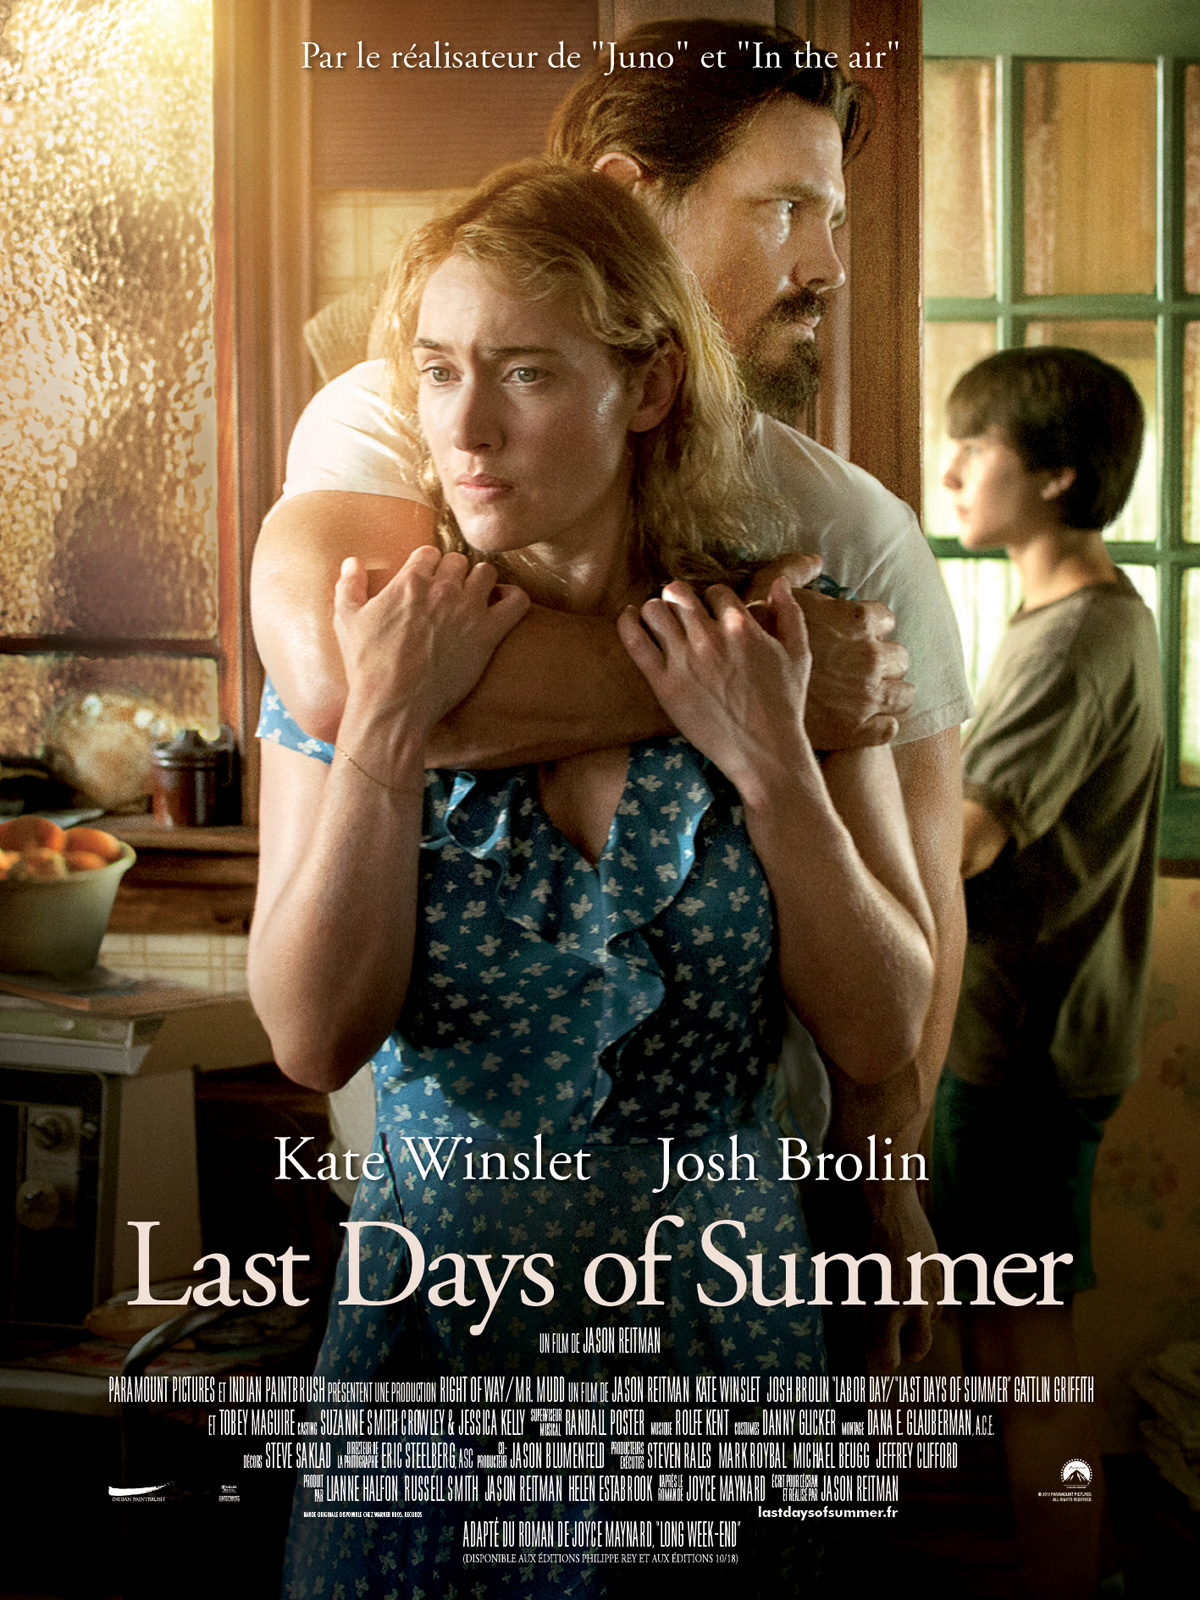 Last days of Summer - VOSTFR BDRip